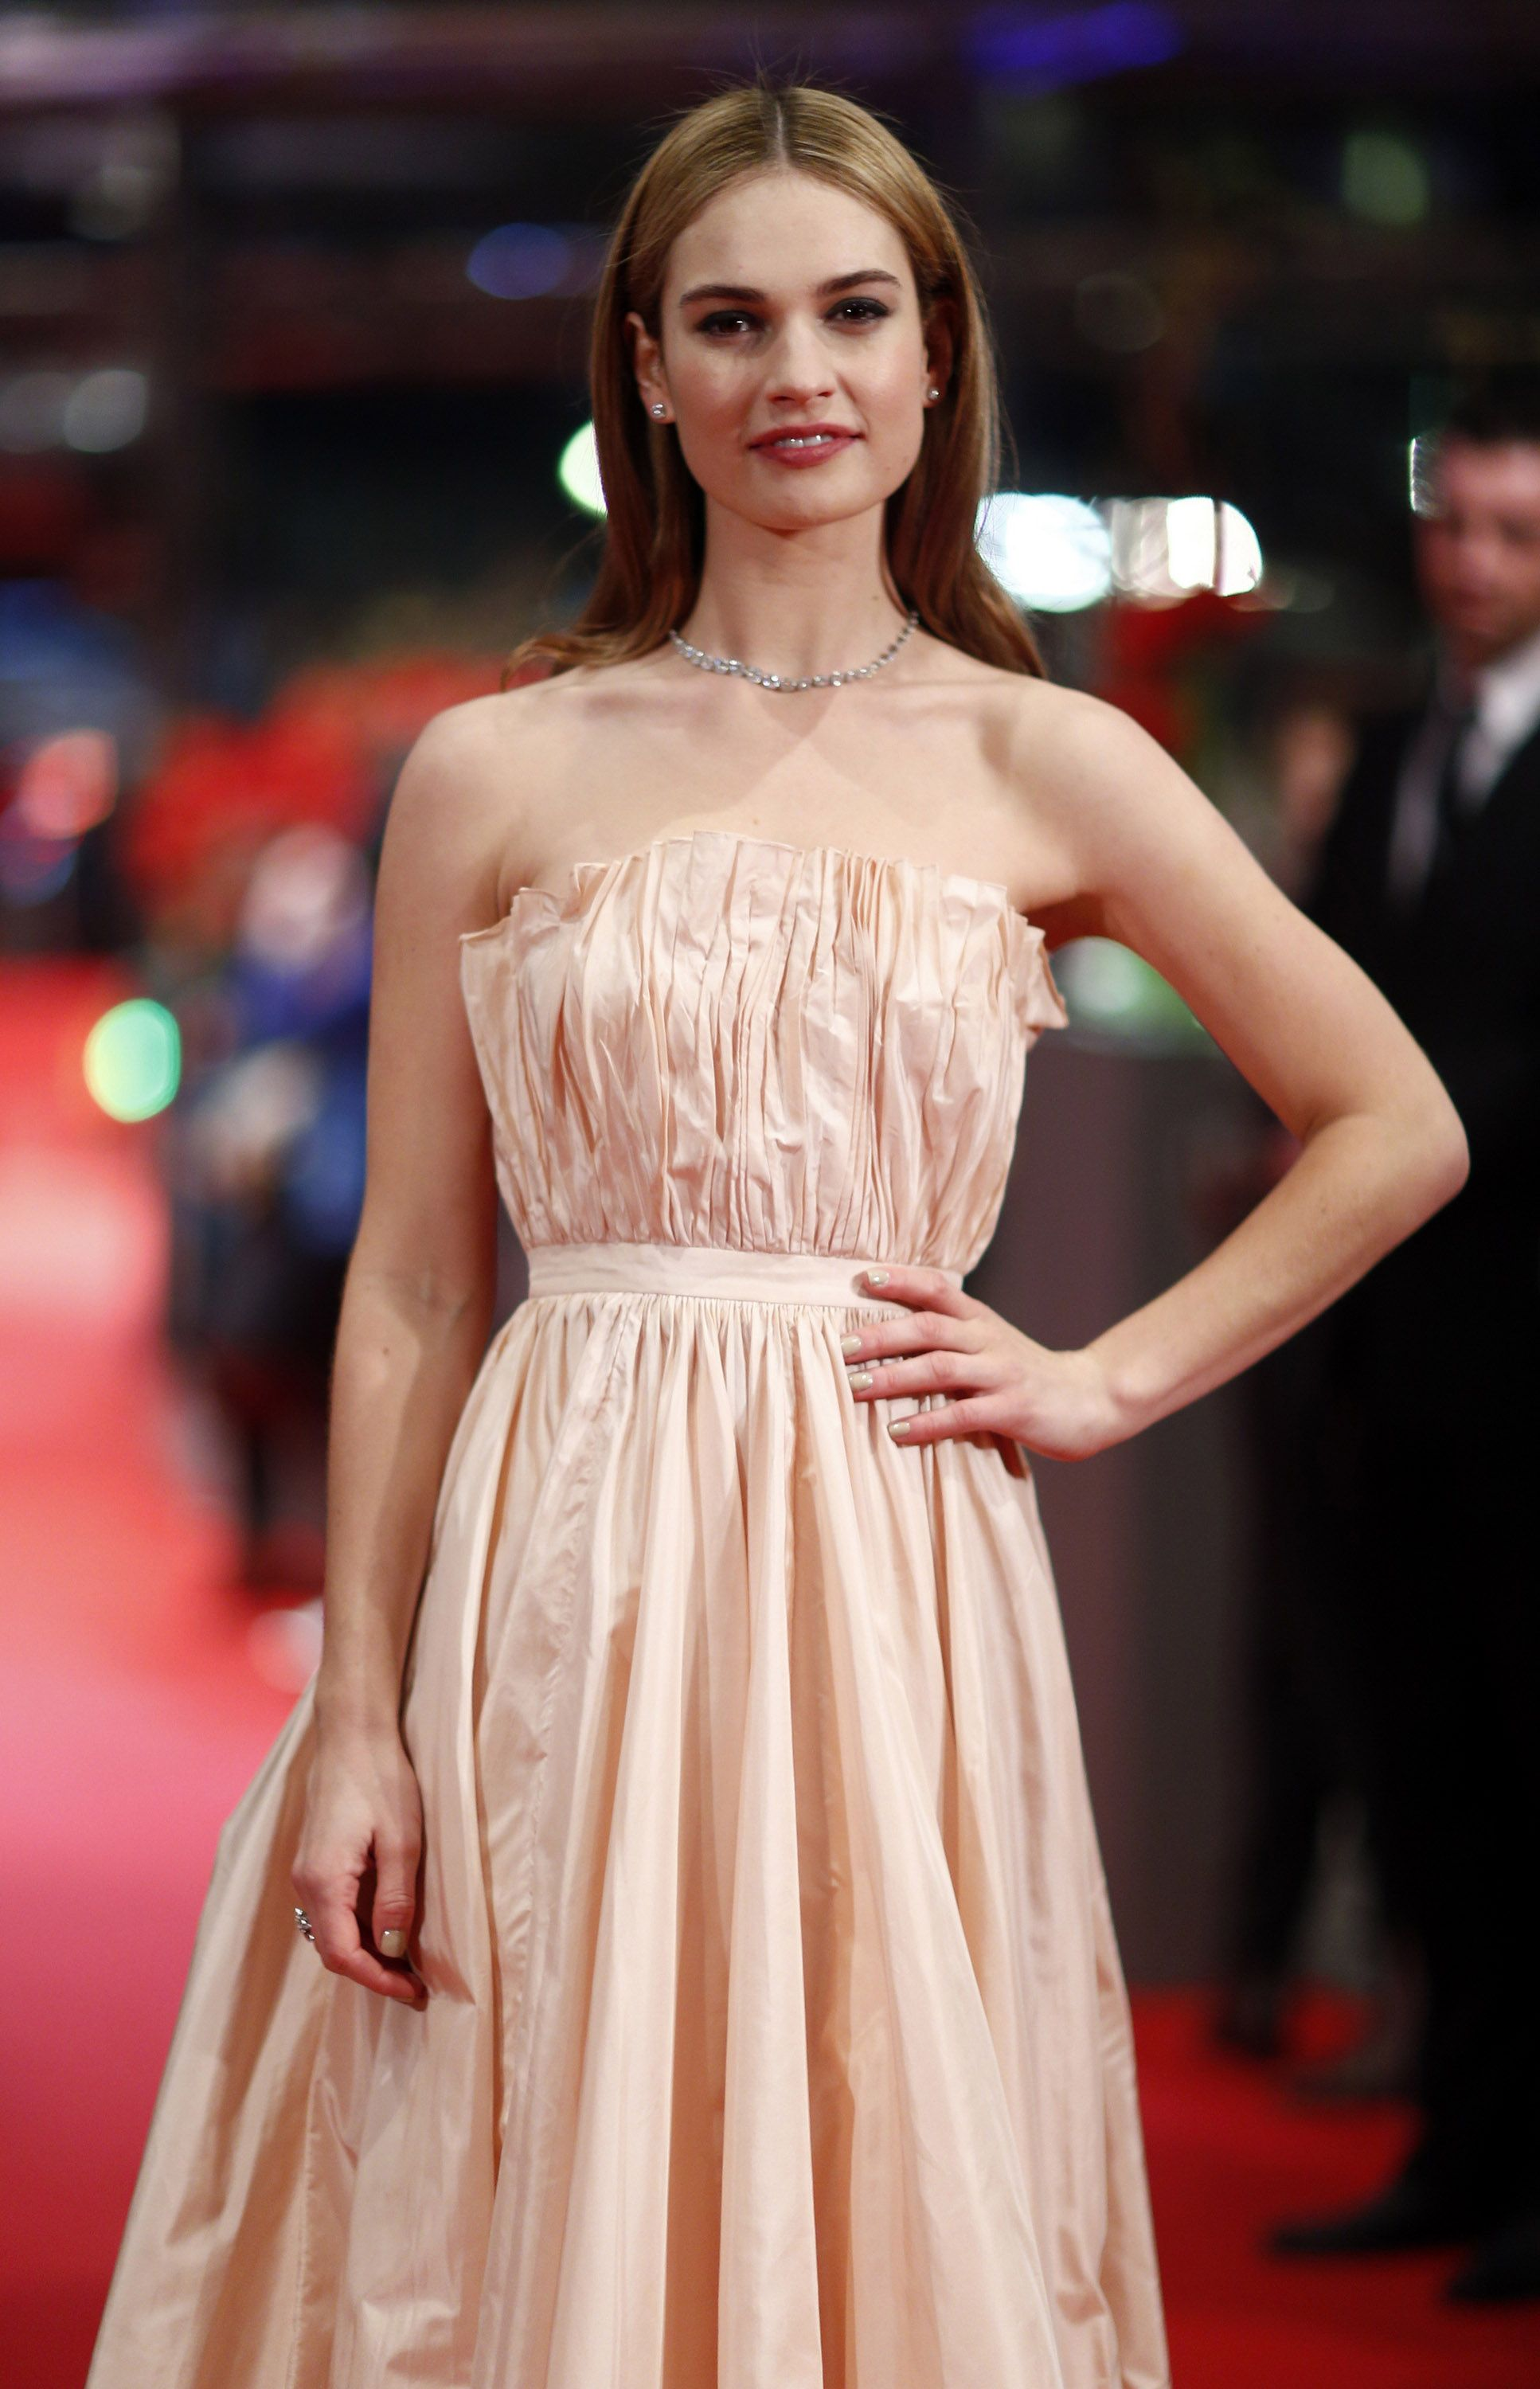 Lily James at the 'Cinderella' premiere at the 65th Berlin